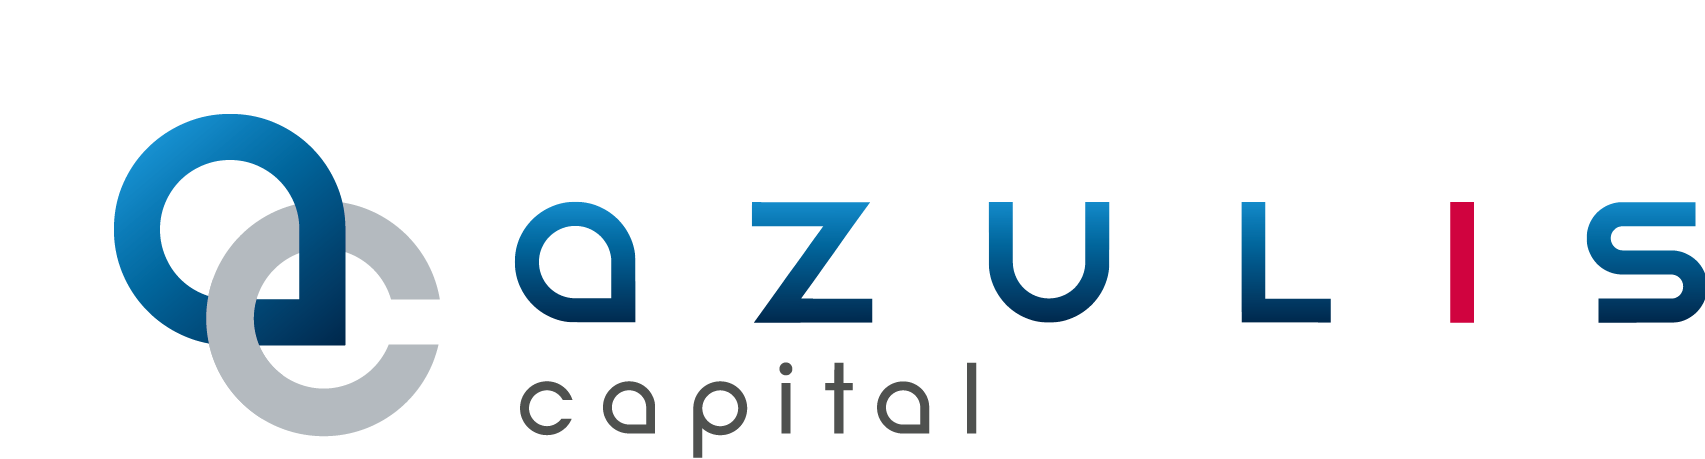 Logo azulis capital rvb hd